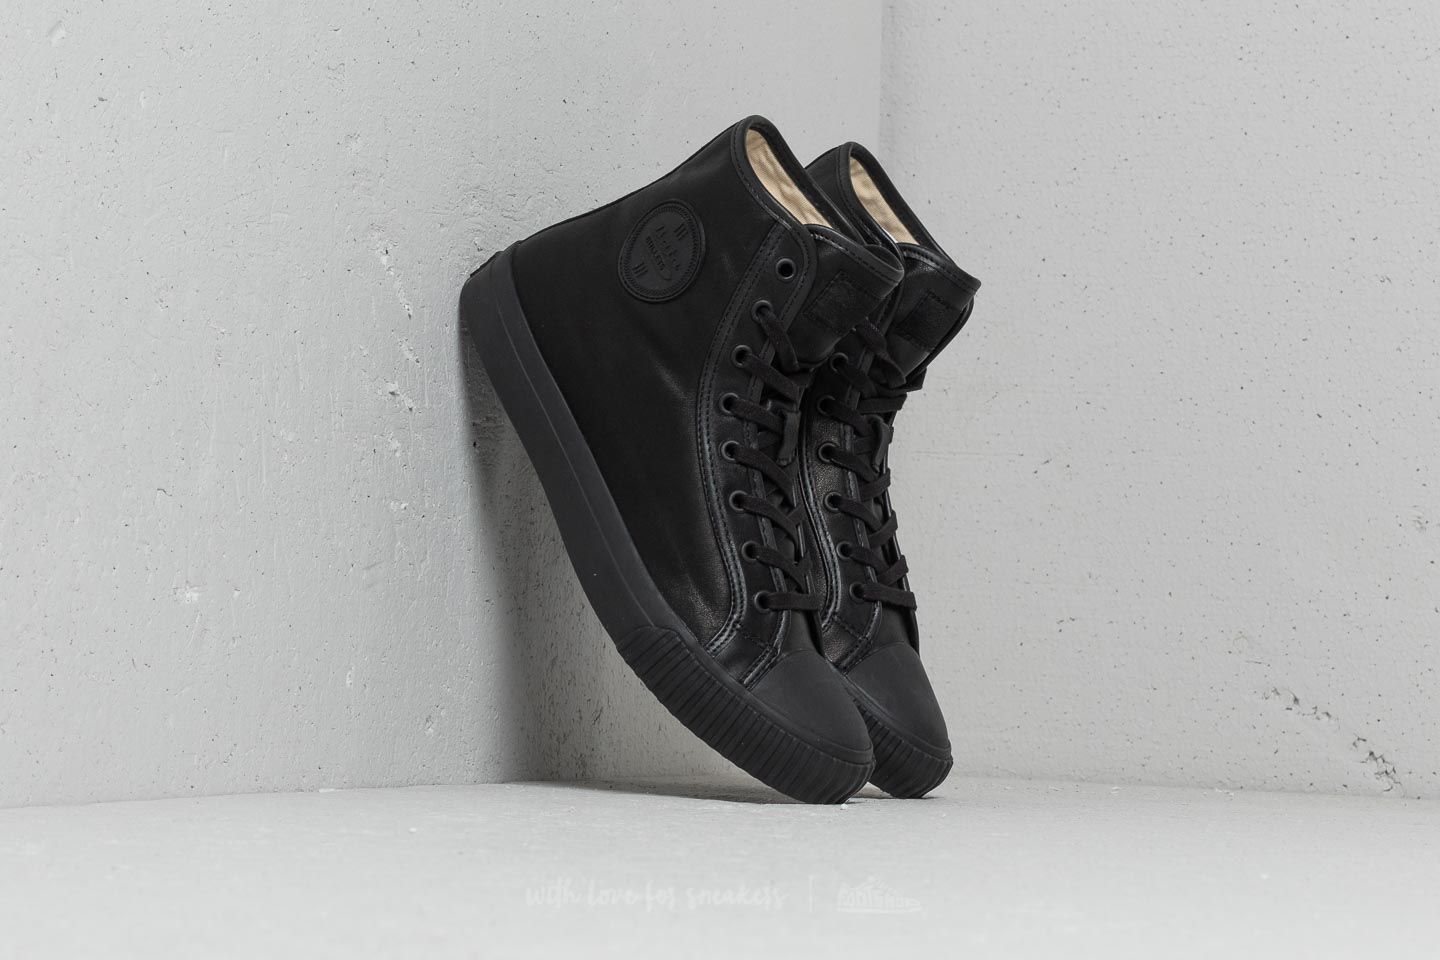 0b75fb4549 Baťa Bullets High Top Black